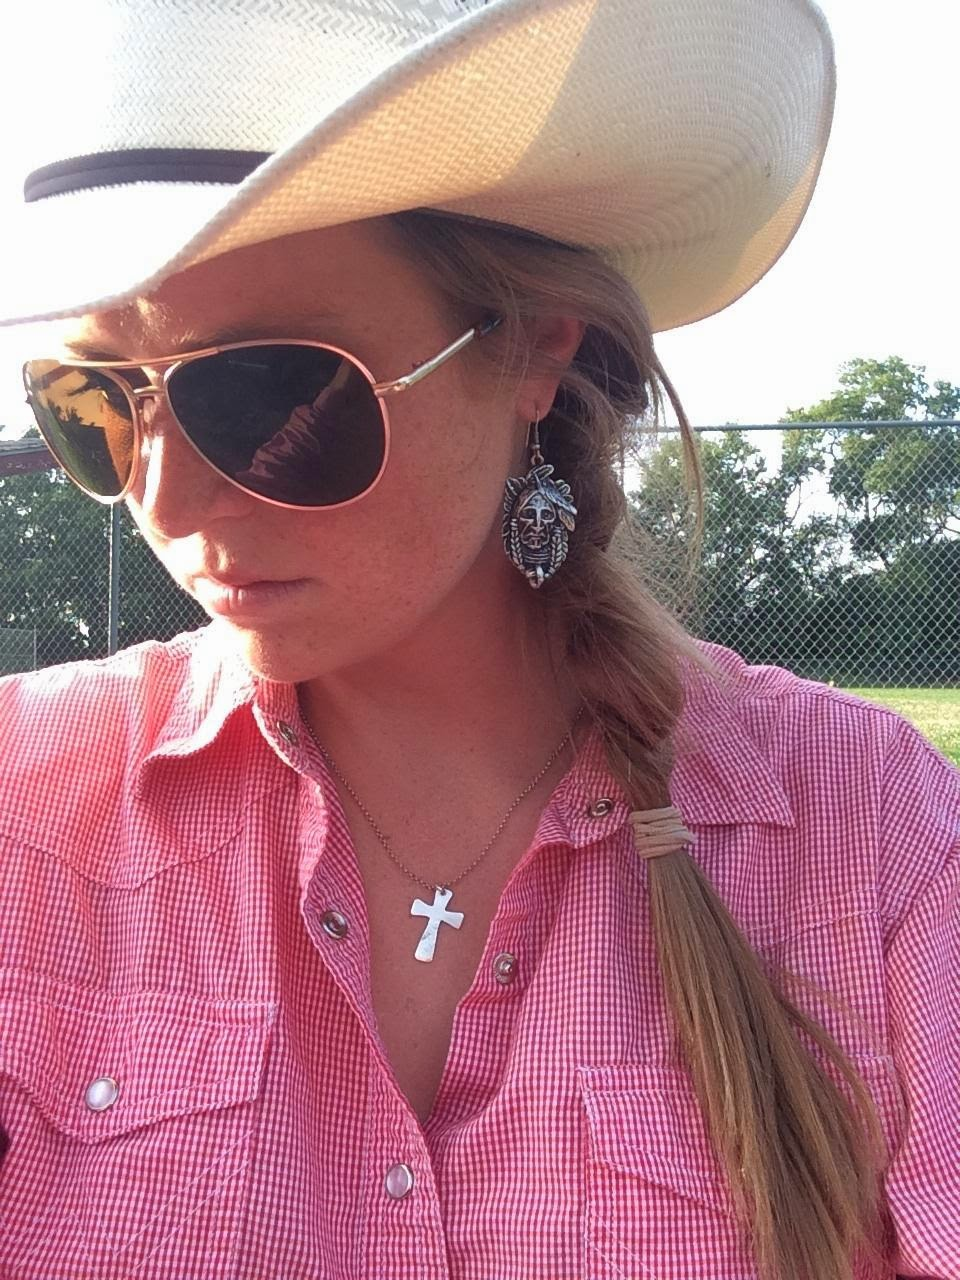 A glimpse inside a cowgirl's motivation